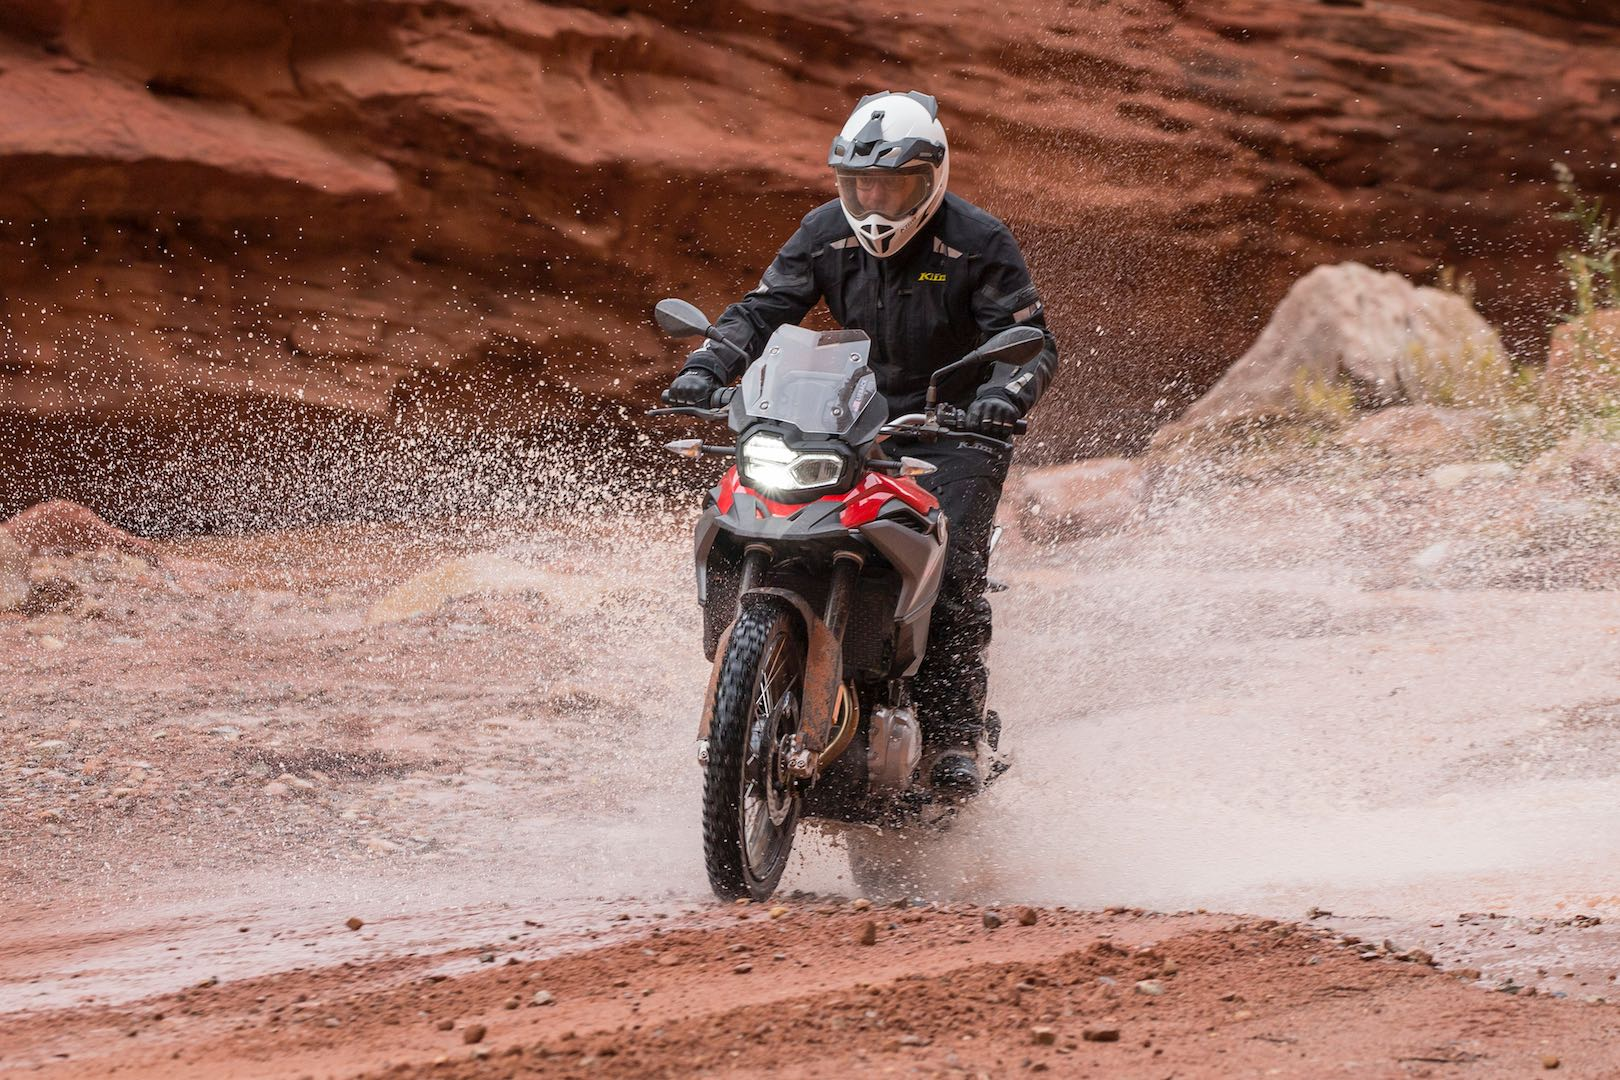 2019 BMW F 850 GS water crossing